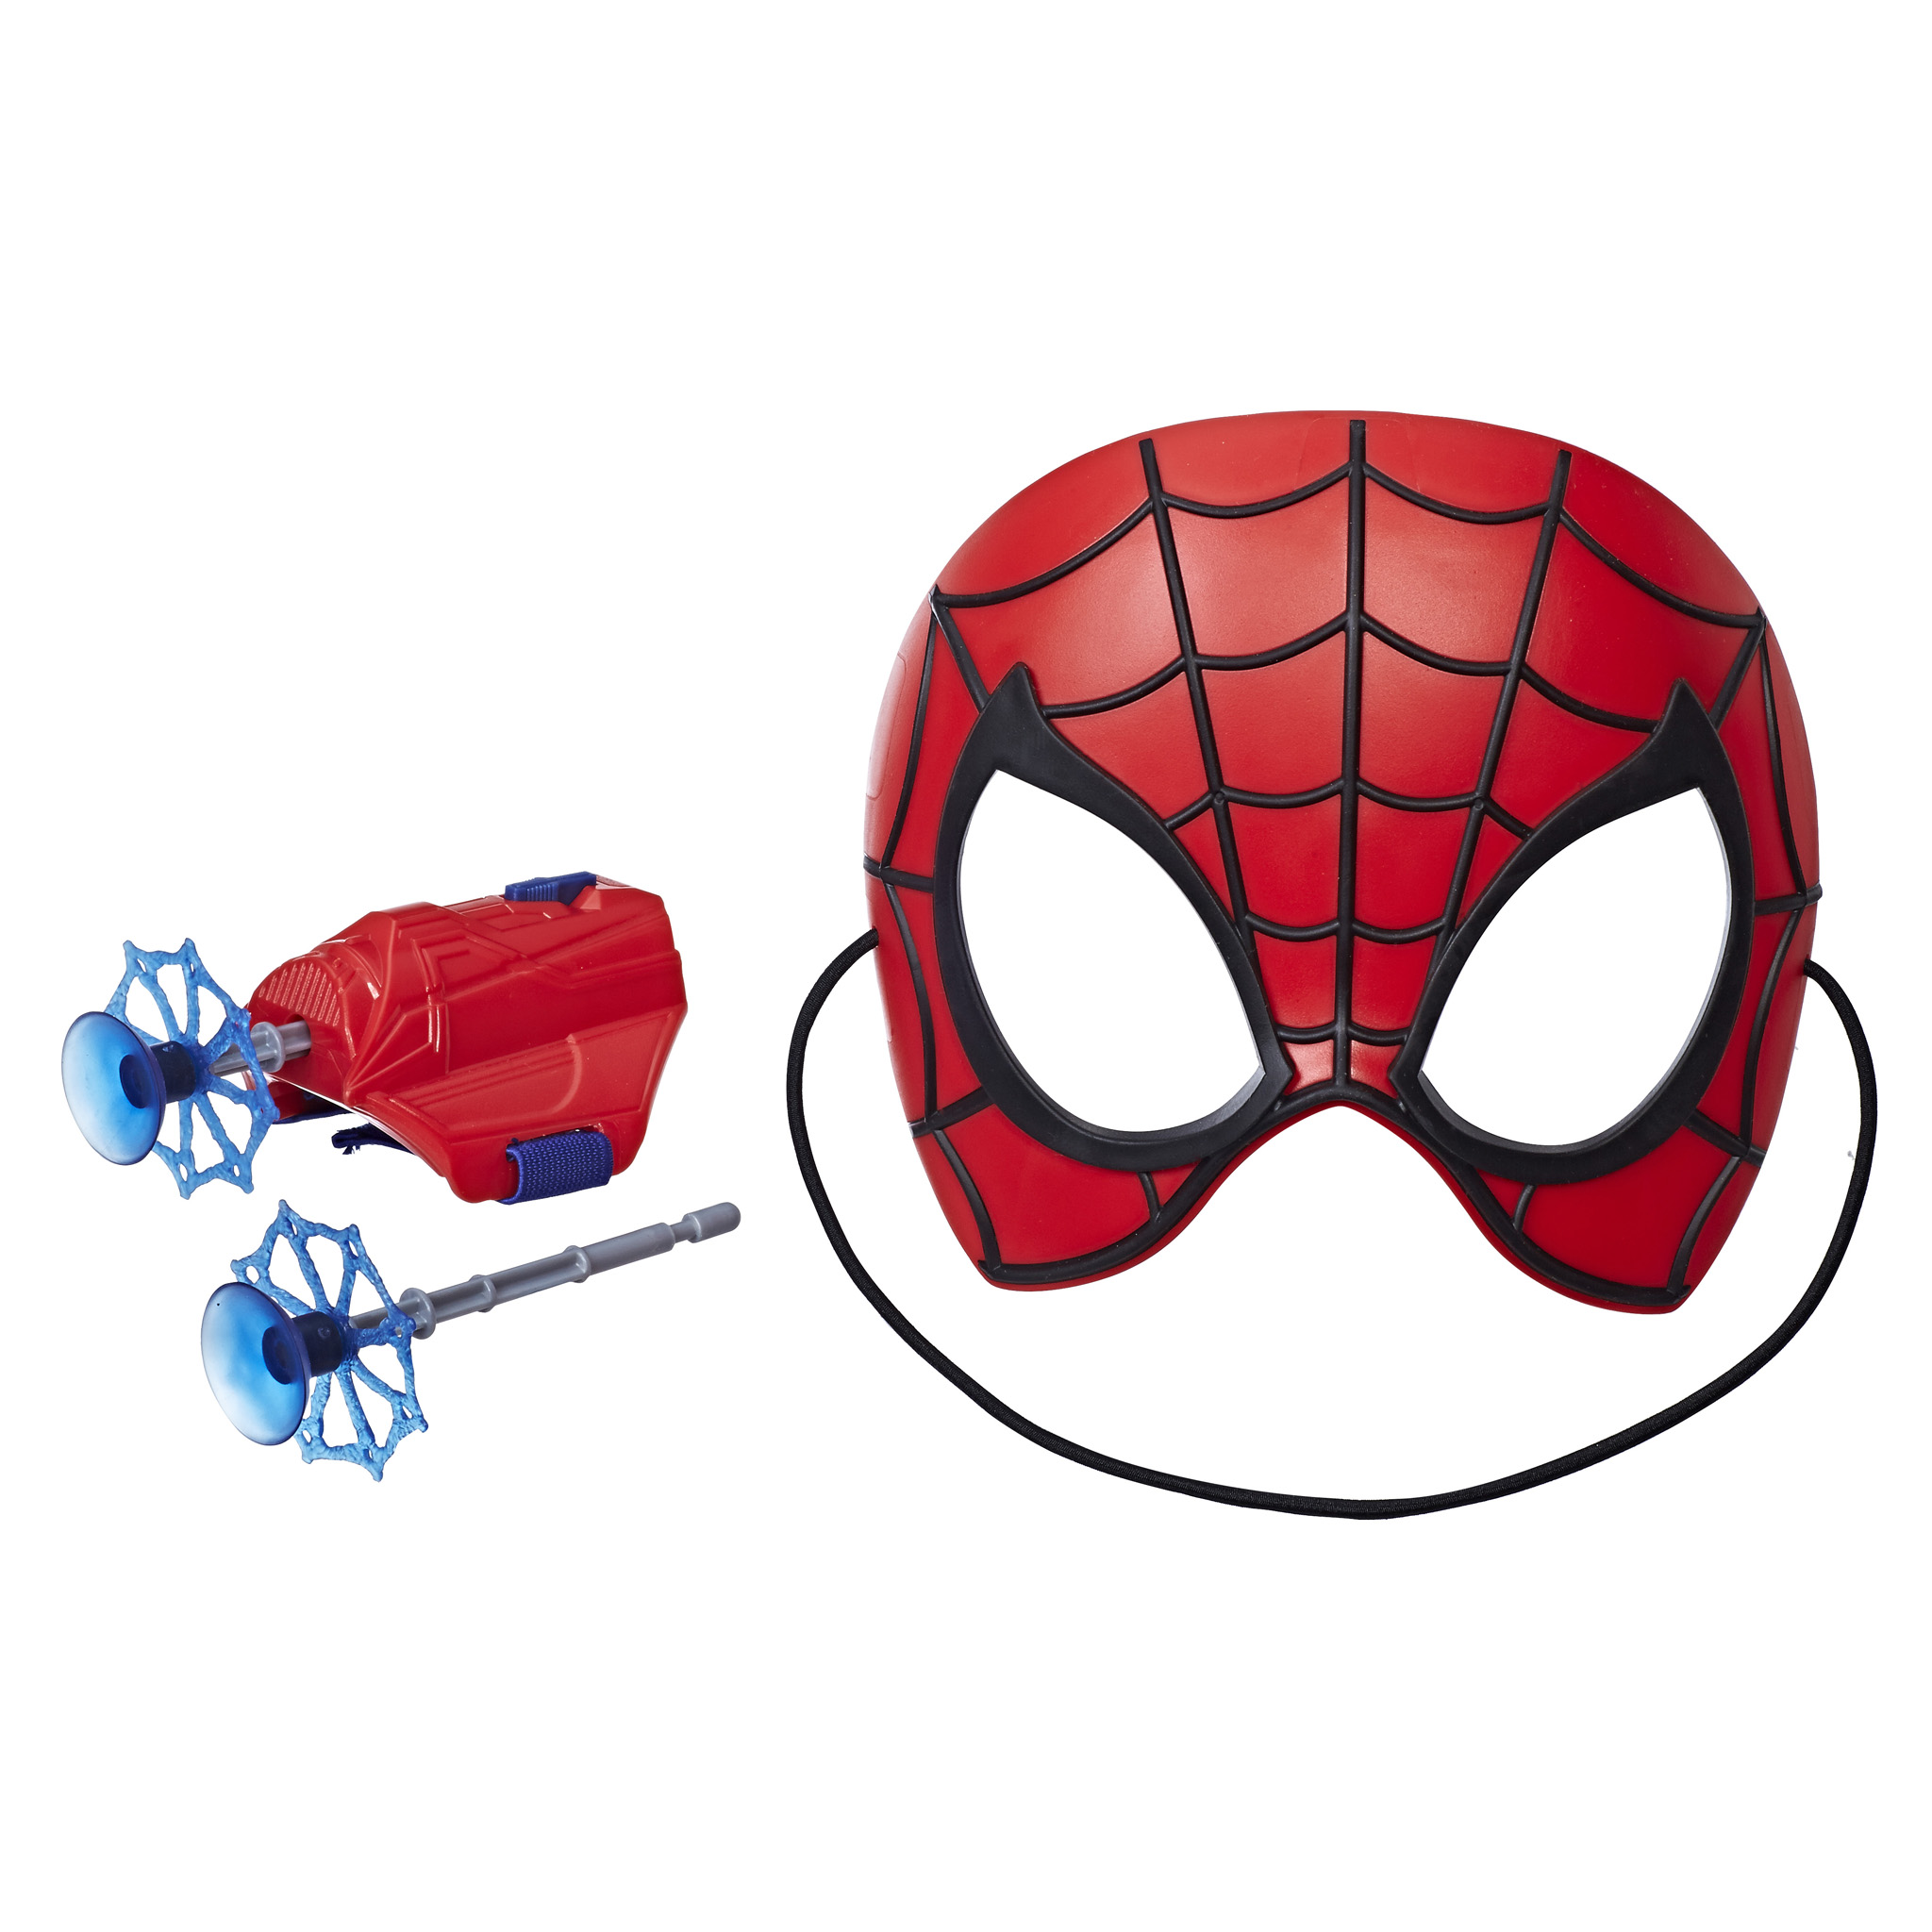 Hasbro Reveals MORE Spider-Man: Into The Spider-Verse Toys